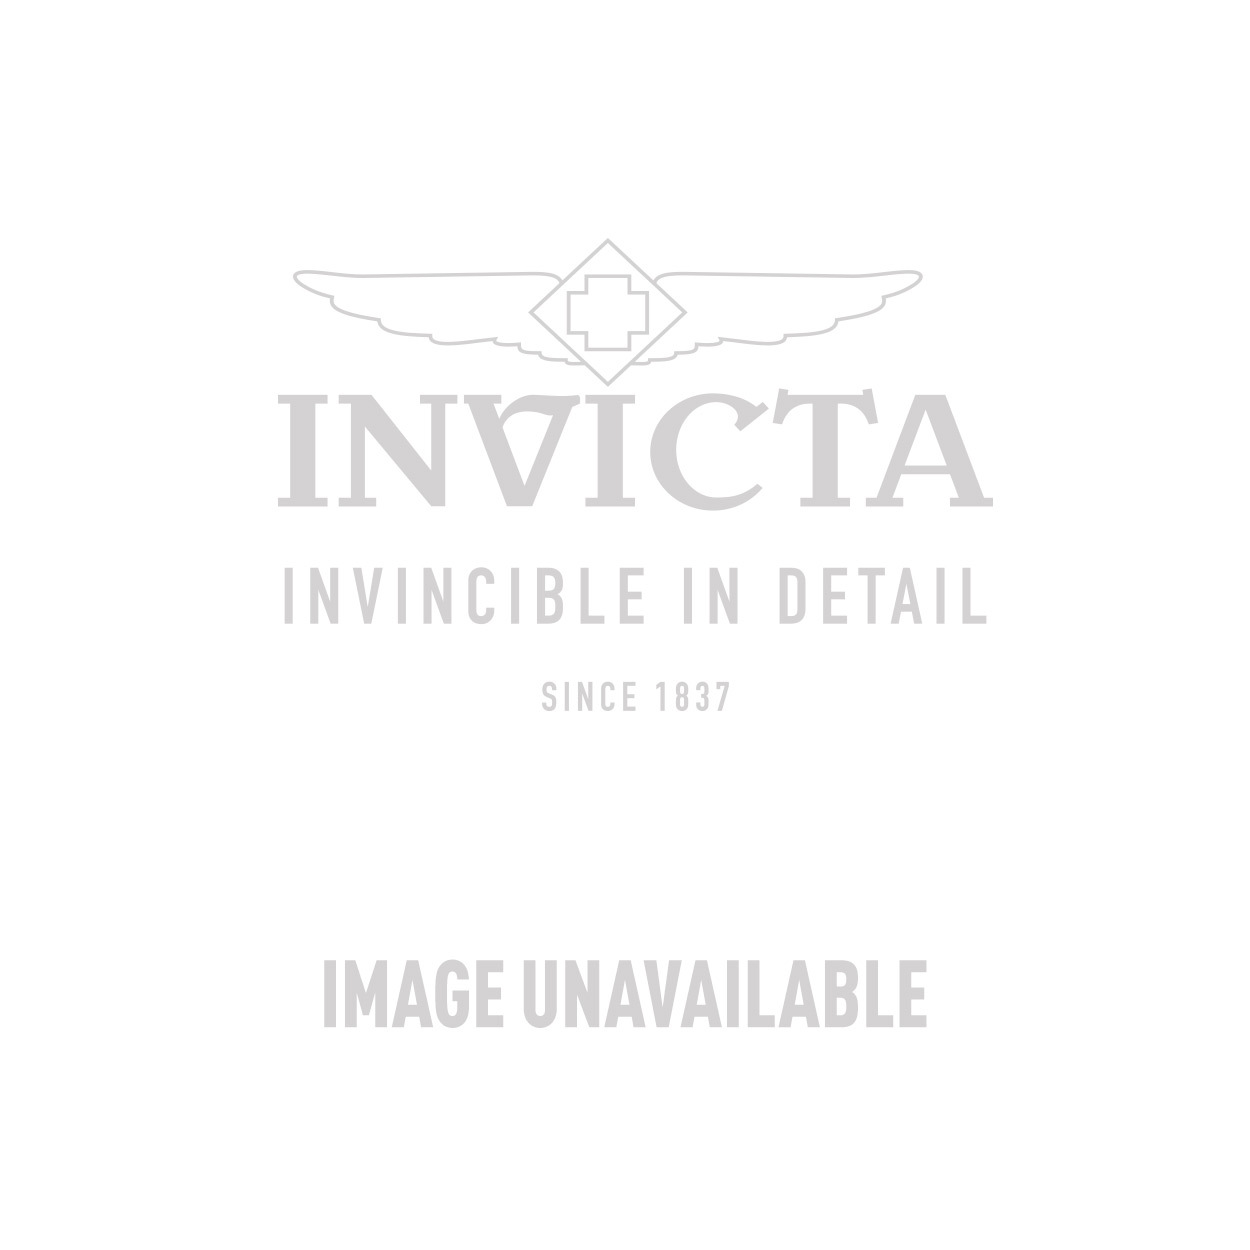 Invicta Sea Hunter  Quartz Watch - Stainless Steel case with Black tone Stainless Steel band - Model 10766